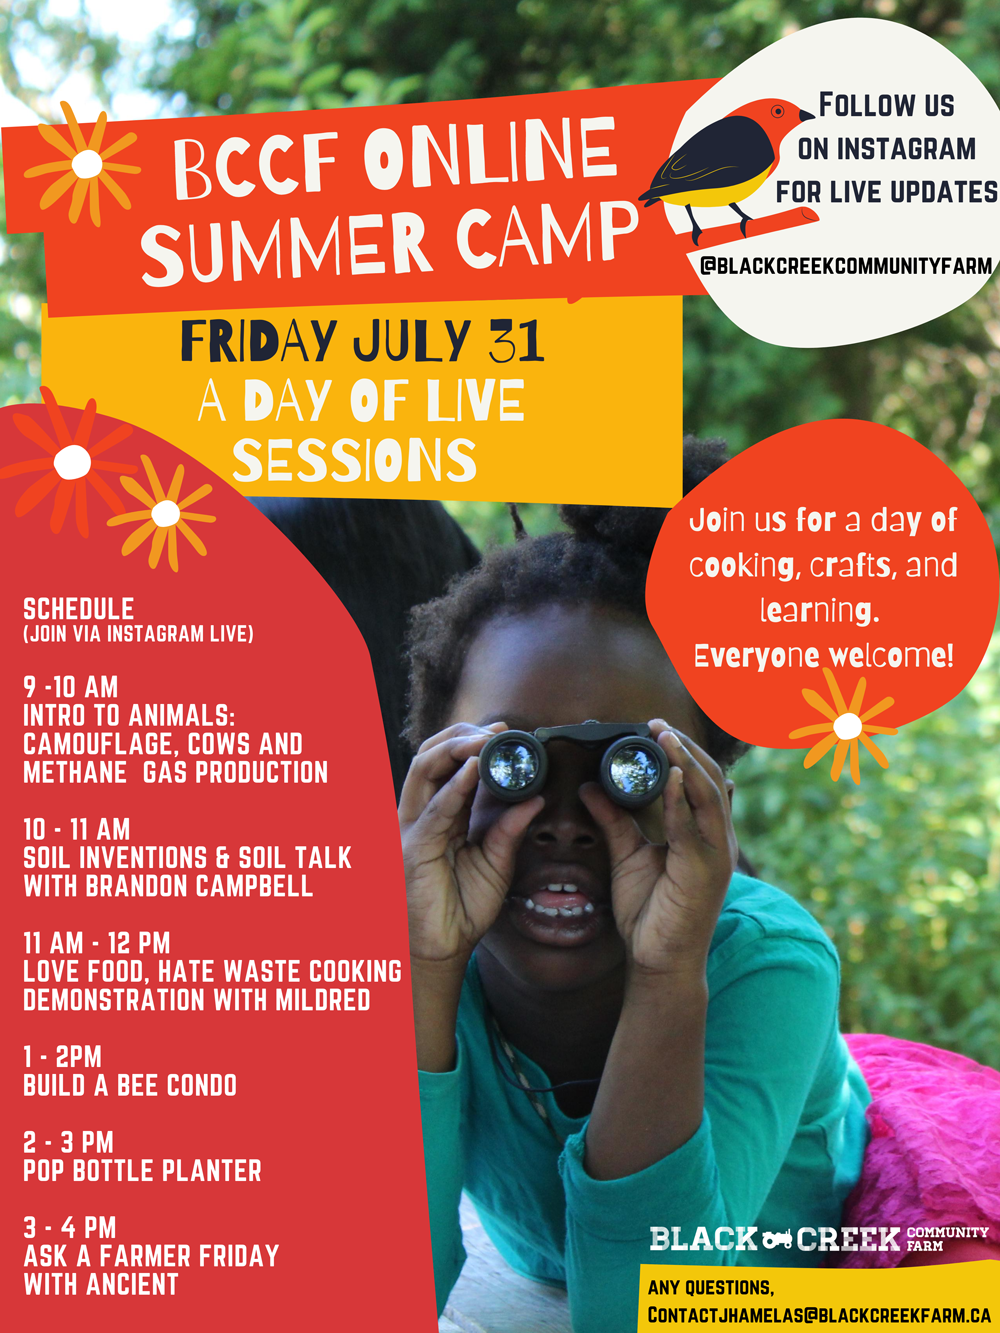 BCCF Online Summer Camp Poster - July 31st